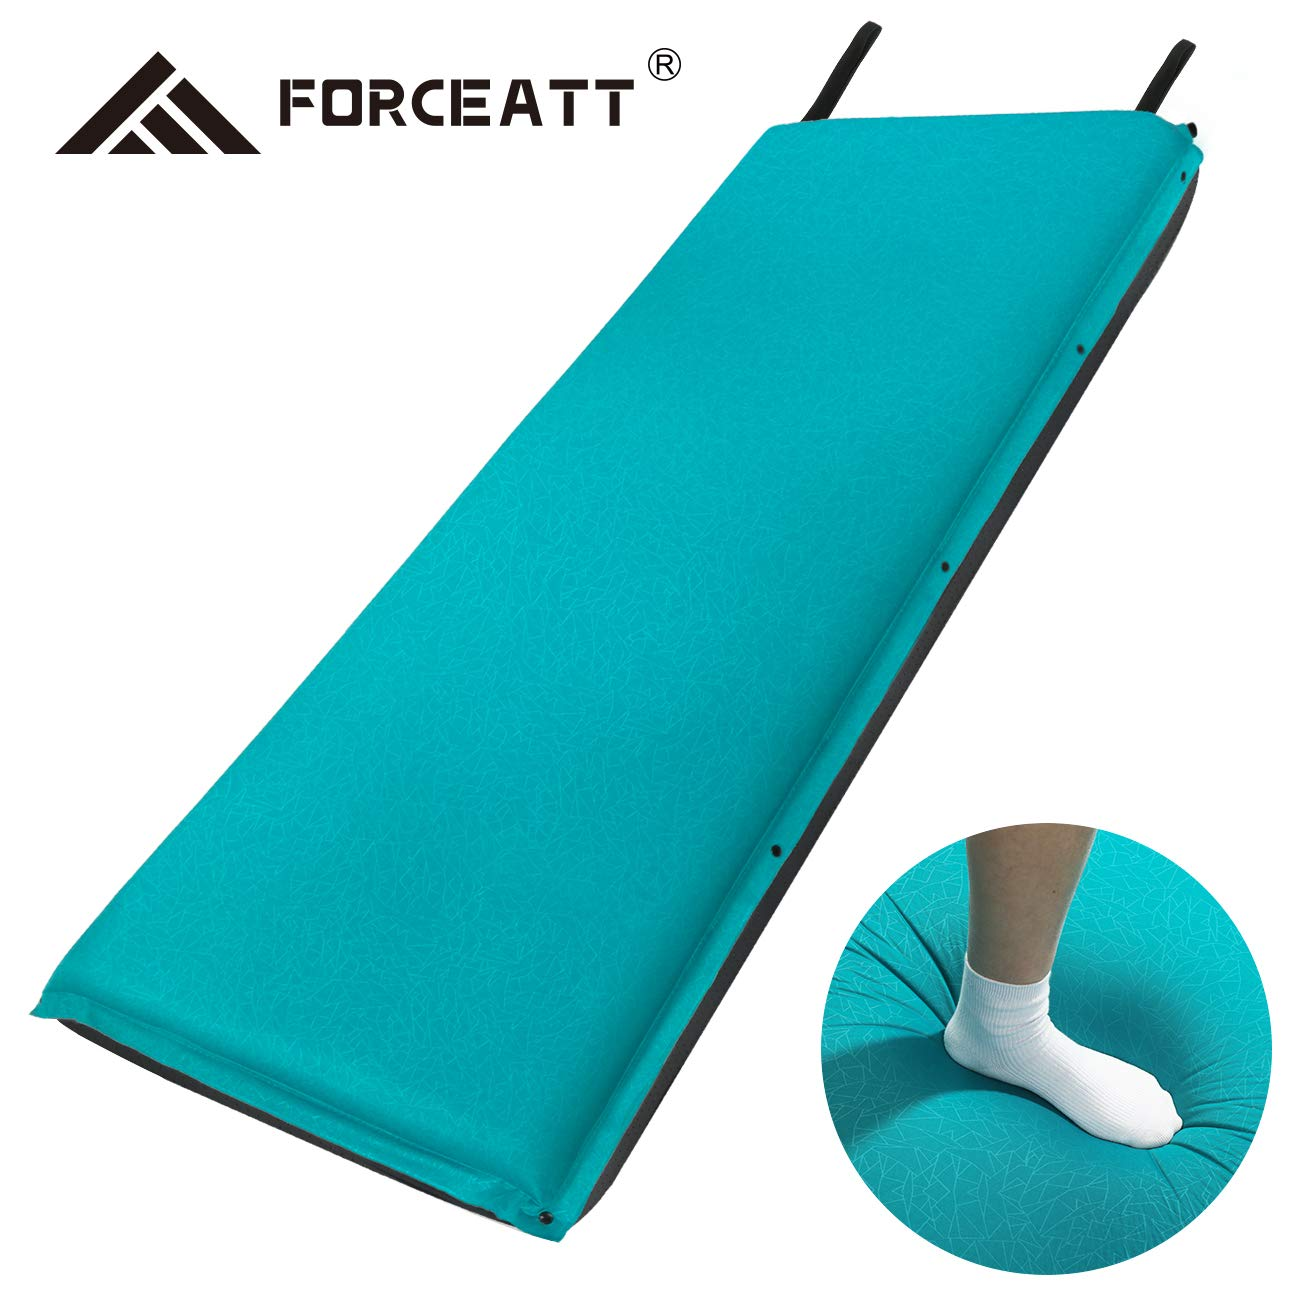 Thick Self Inflating Lightweight Camping Pad and Non-Slip Particles on The Back Ideal for Backpacking and Camping Forceatt Camping Sleeping Pad 2 and 3.2 Inches